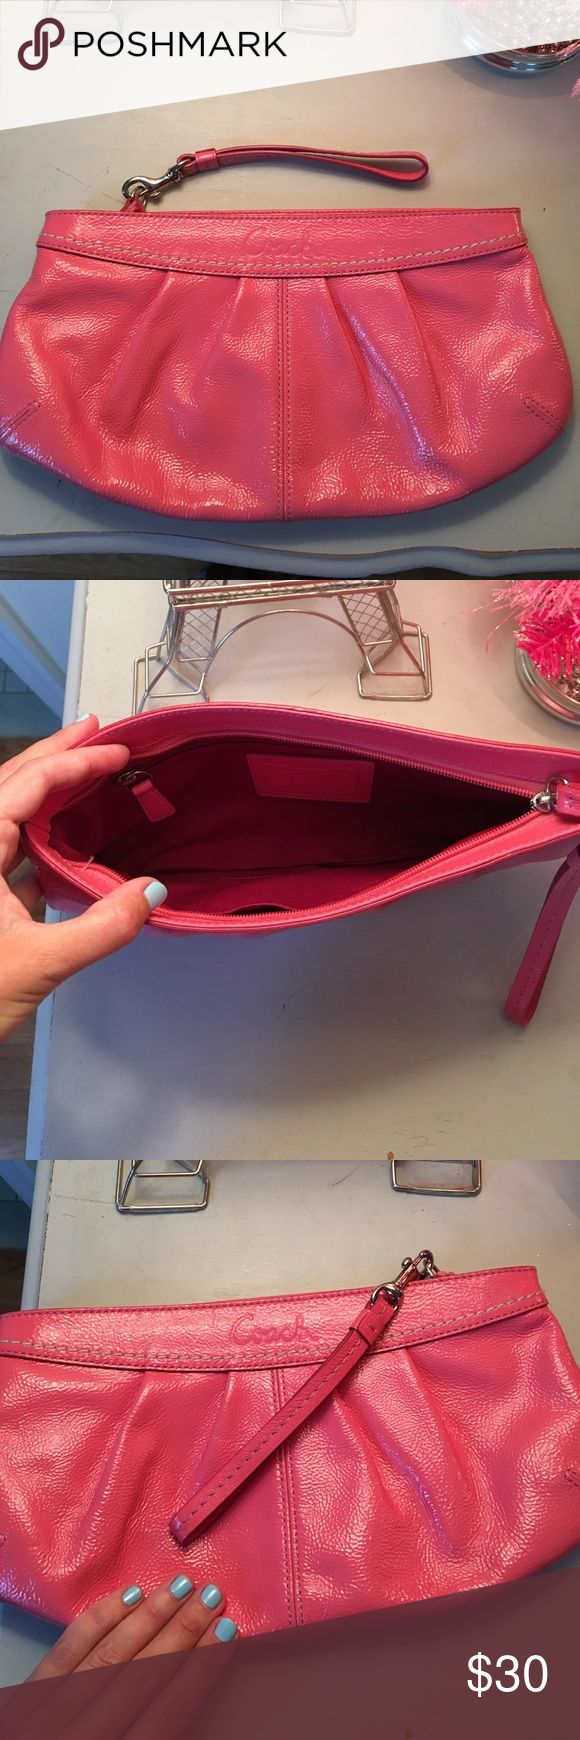 Coral Coach Clutch Small coral clutch, around 12 inches long (sunglasses for scale in picture) Coach Bags Clutches & Wristlets